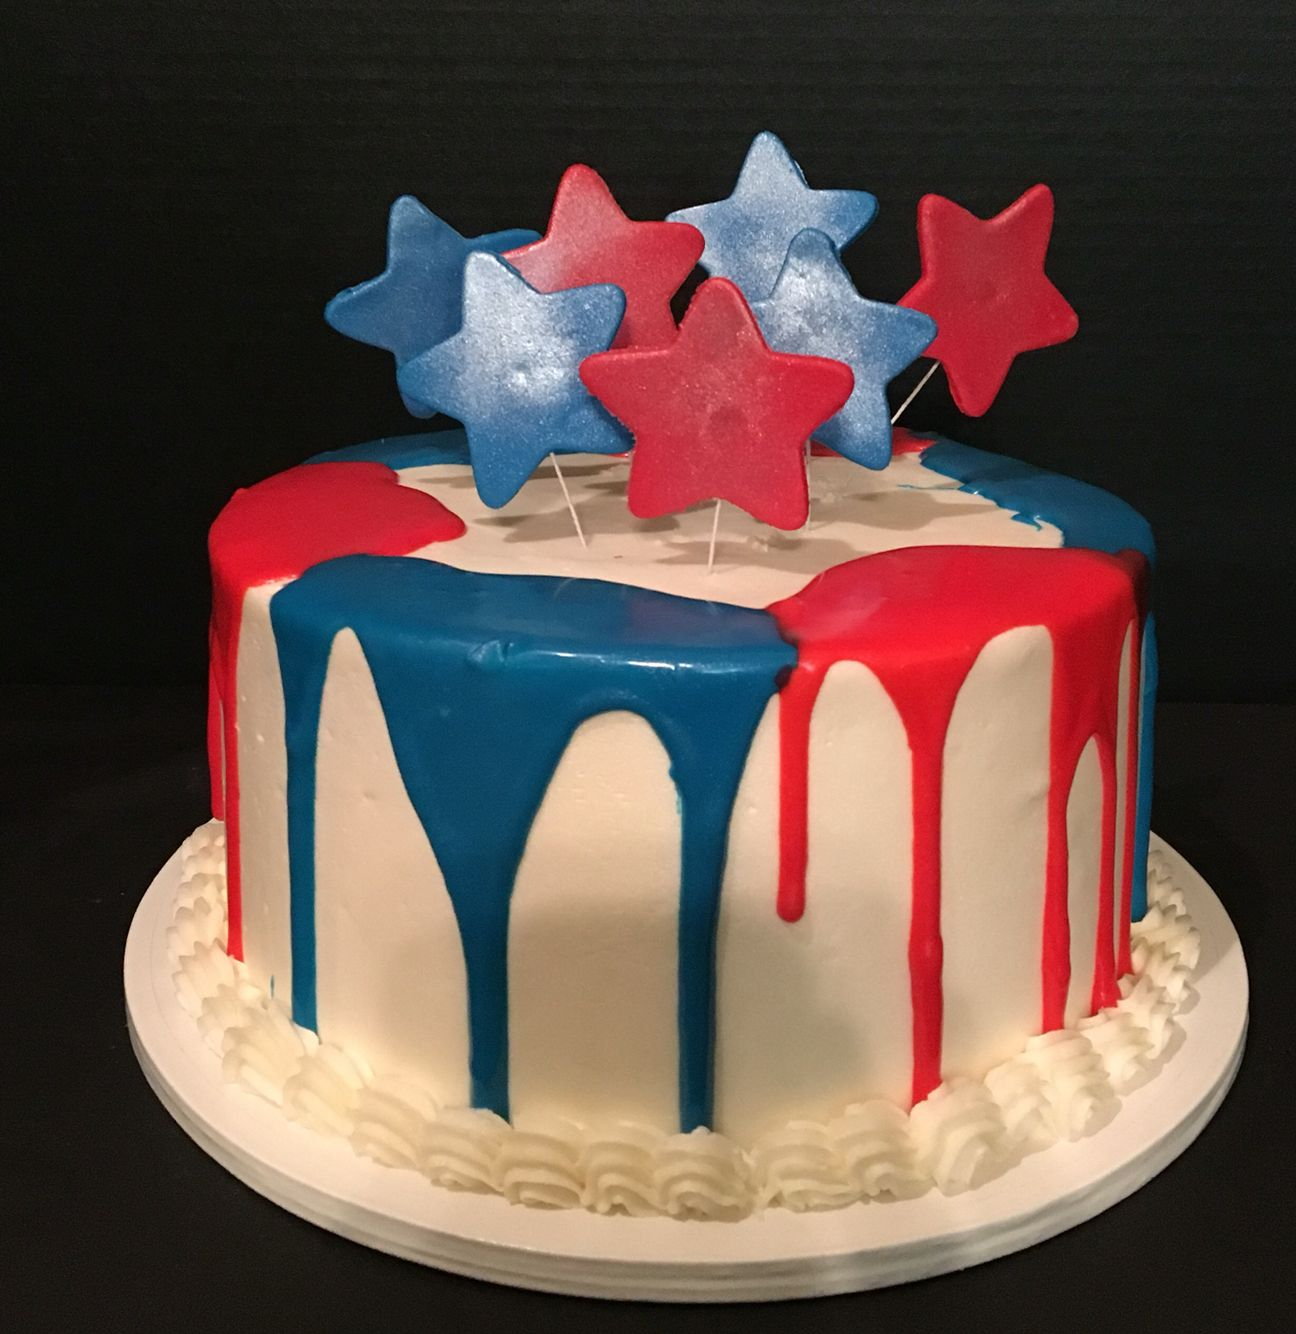 Red, White, And Blue Drip Cake